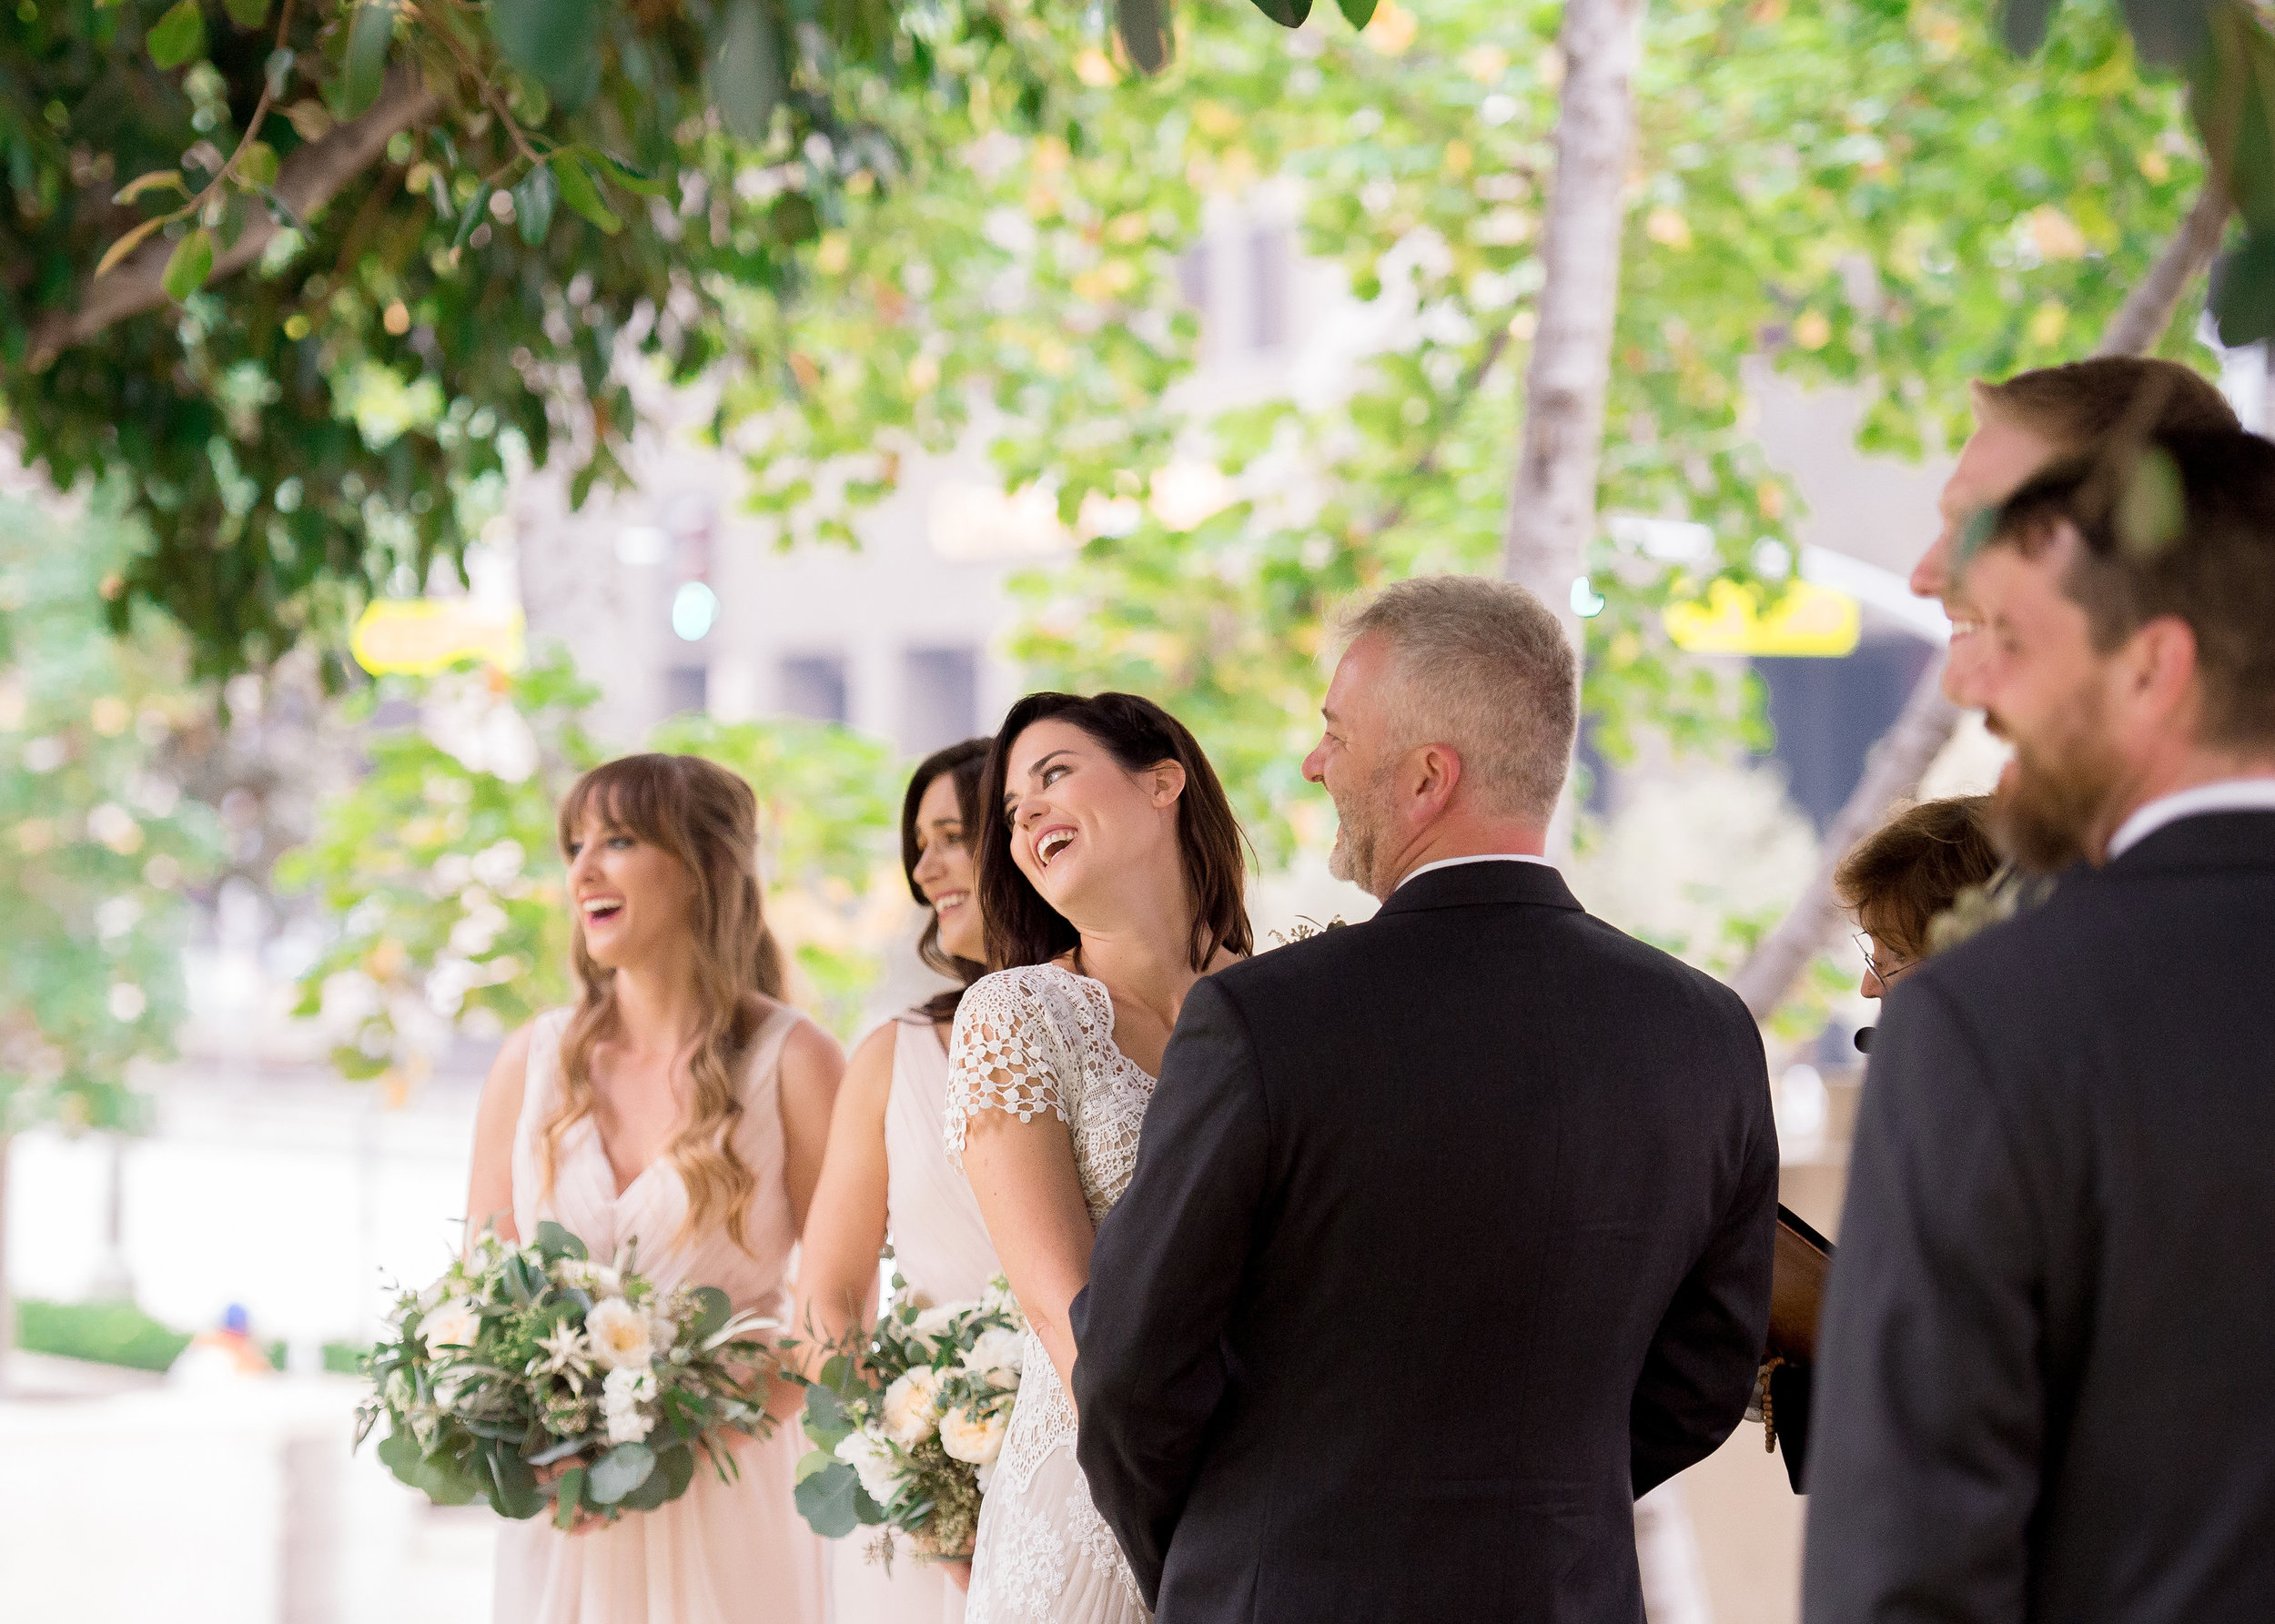 socal-wedding-consultant-best-wedding-planners-in-southern-california-cafe-pinot-wedding-planner32.jpg